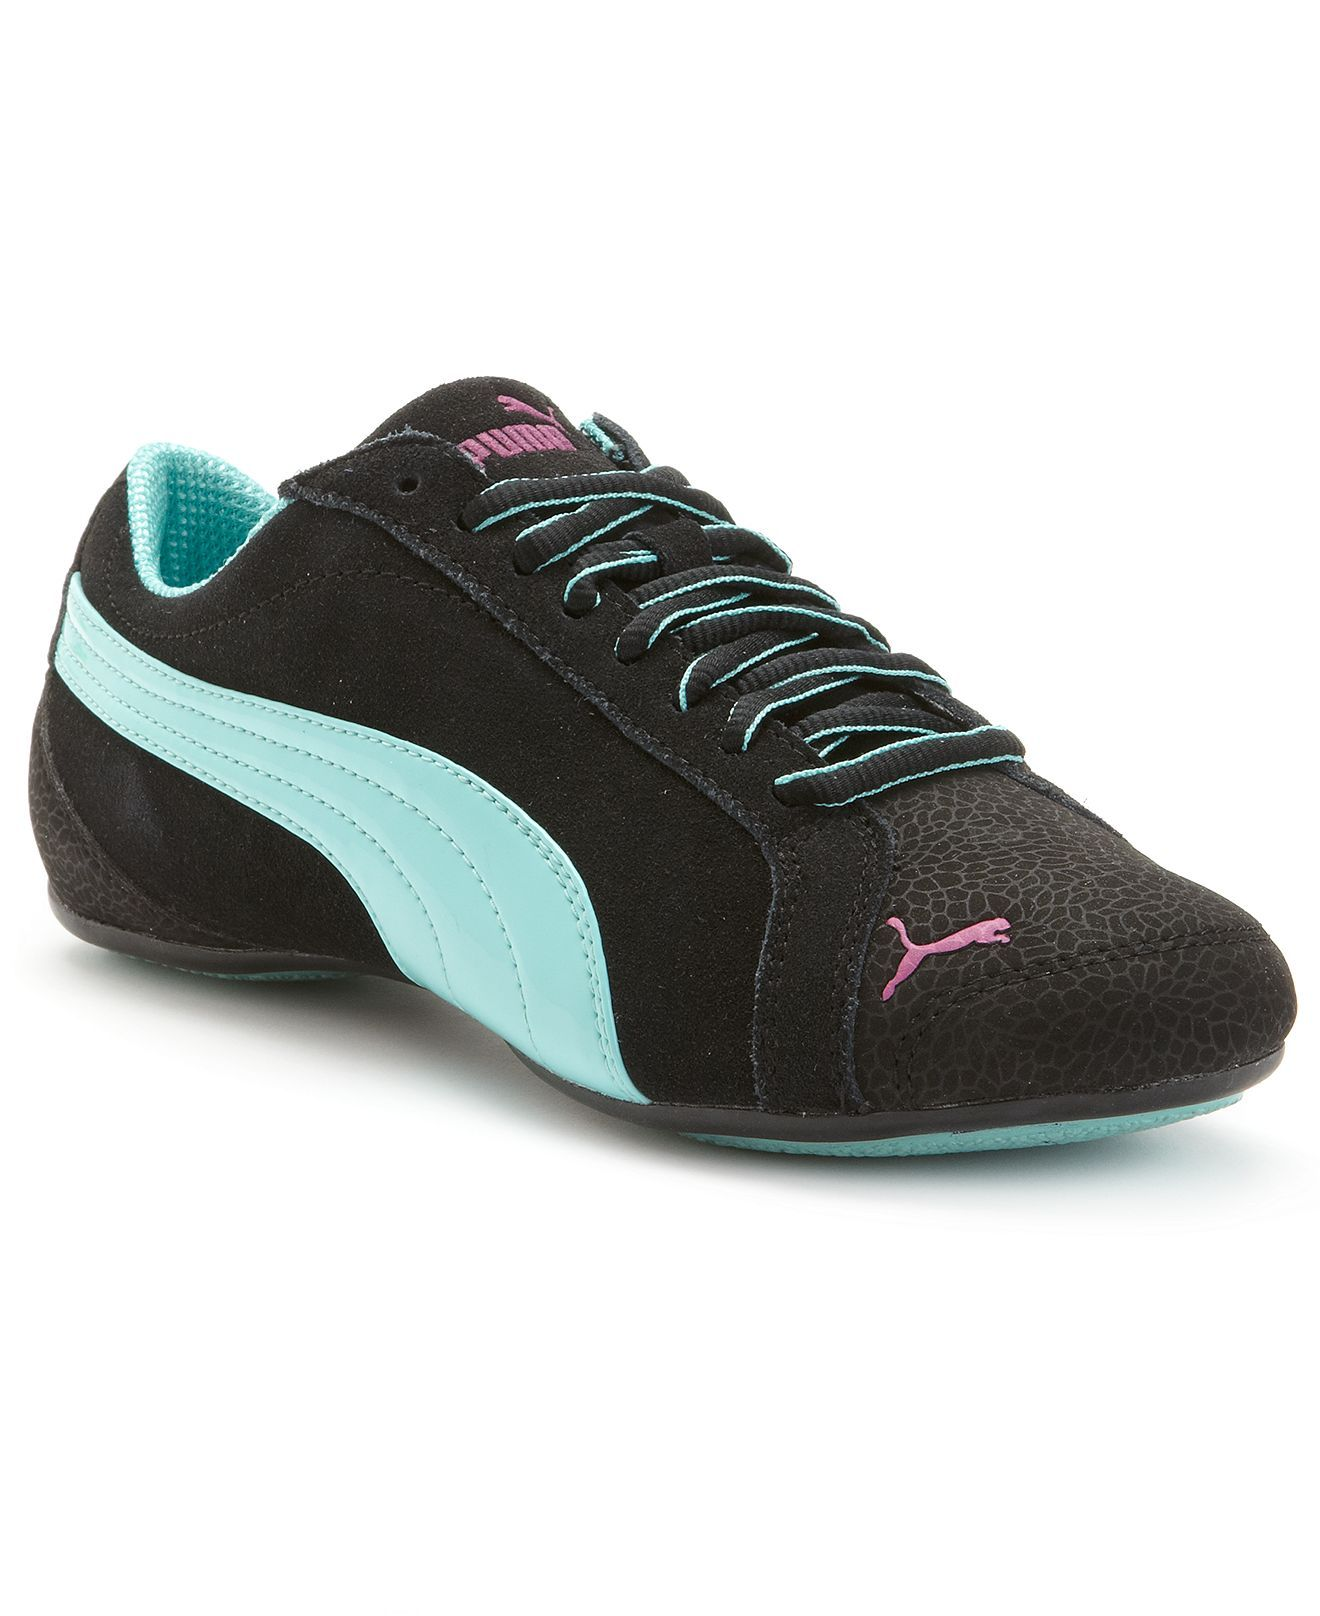 Details about puma womens suede classic rg black running shoes - Puma Women S Shoes Janine Dance Flower Sneakers Sneakers Shoes Macy S